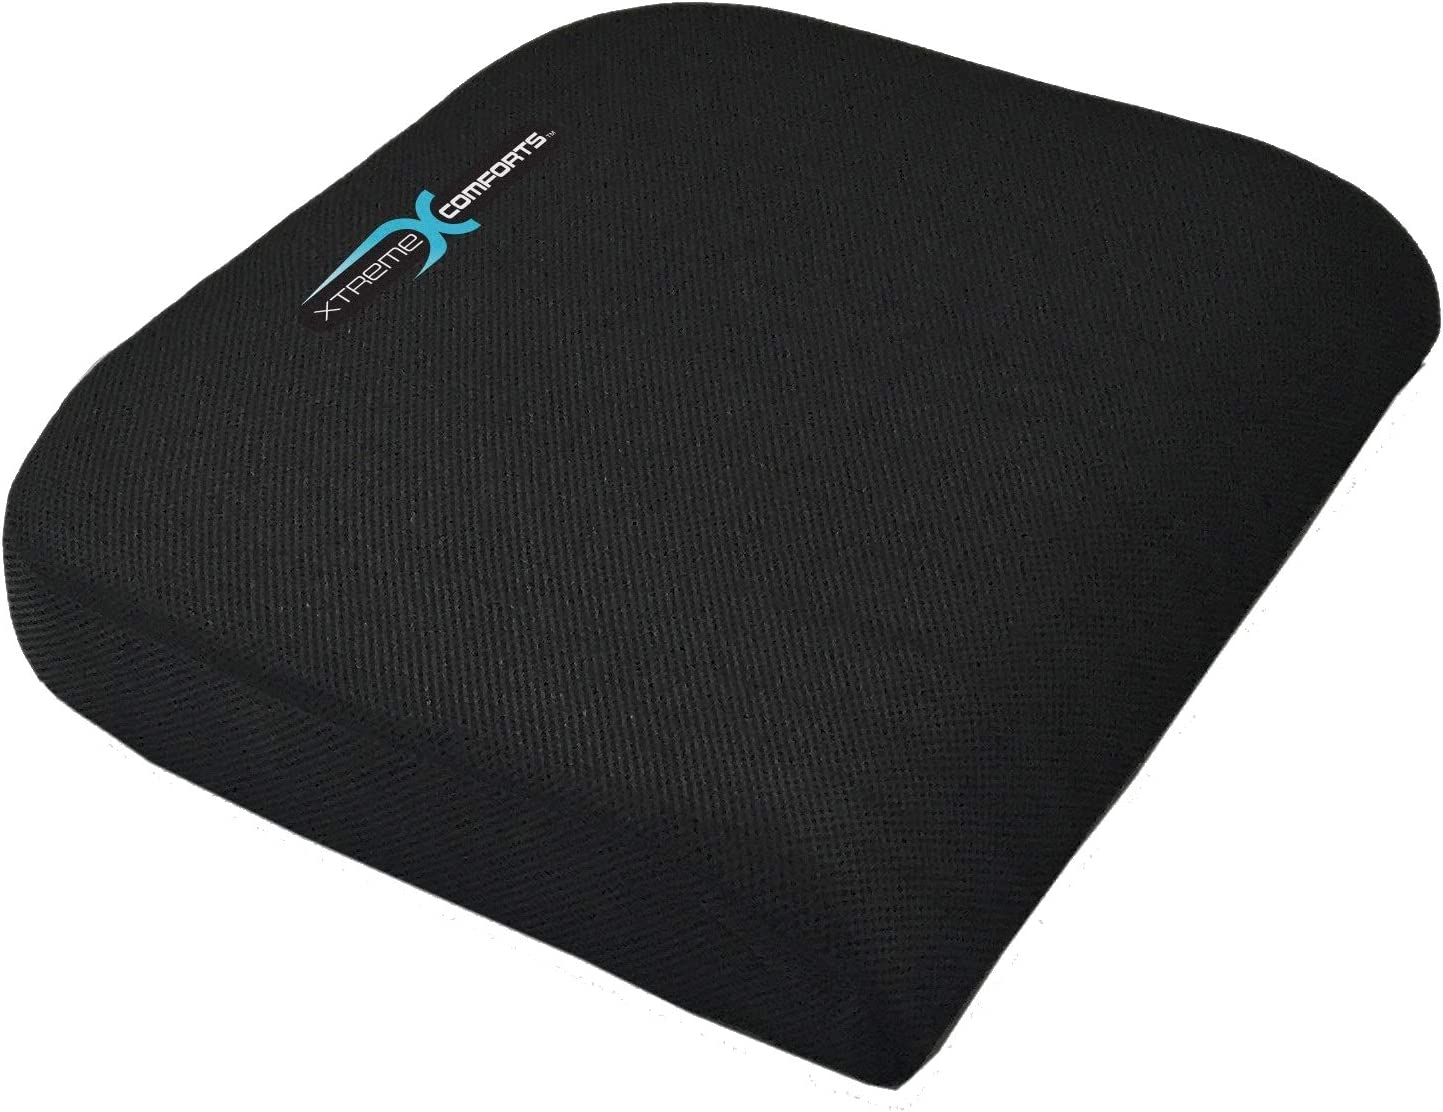 Xtreme Comforts Large Seat Cushion with Carry Handle